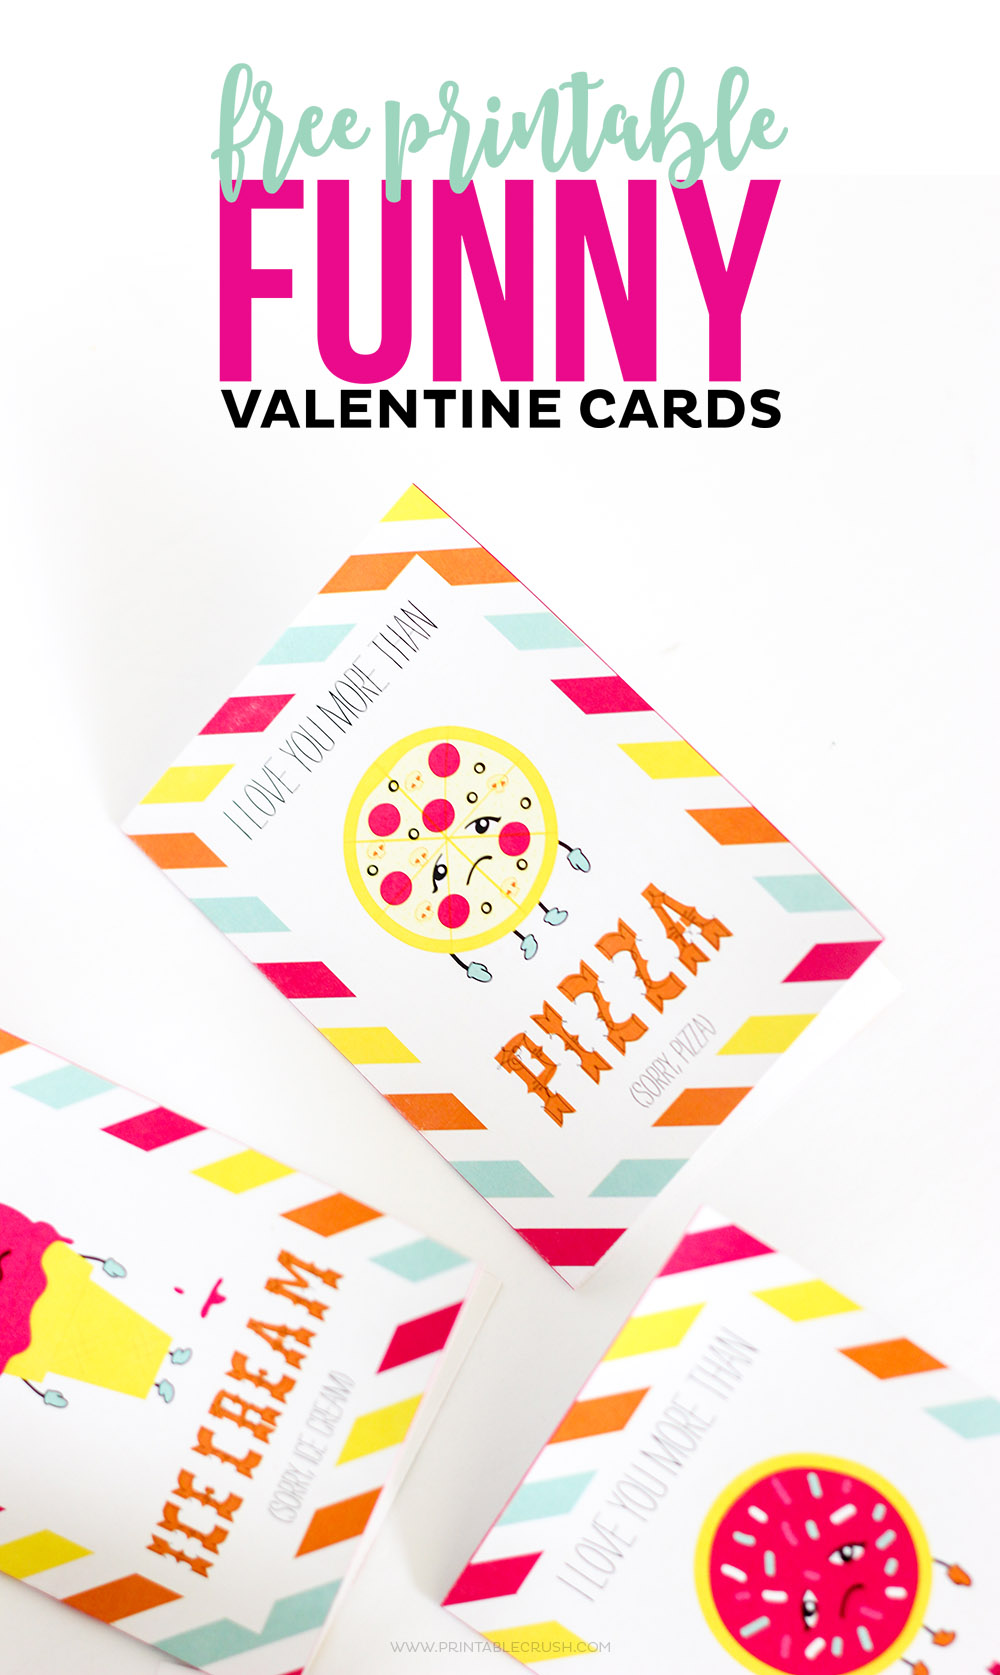 graphic regarding Funny Printable Valentines Cards called No cost Printable Humorous Valentine Playing cards - Printable Crush